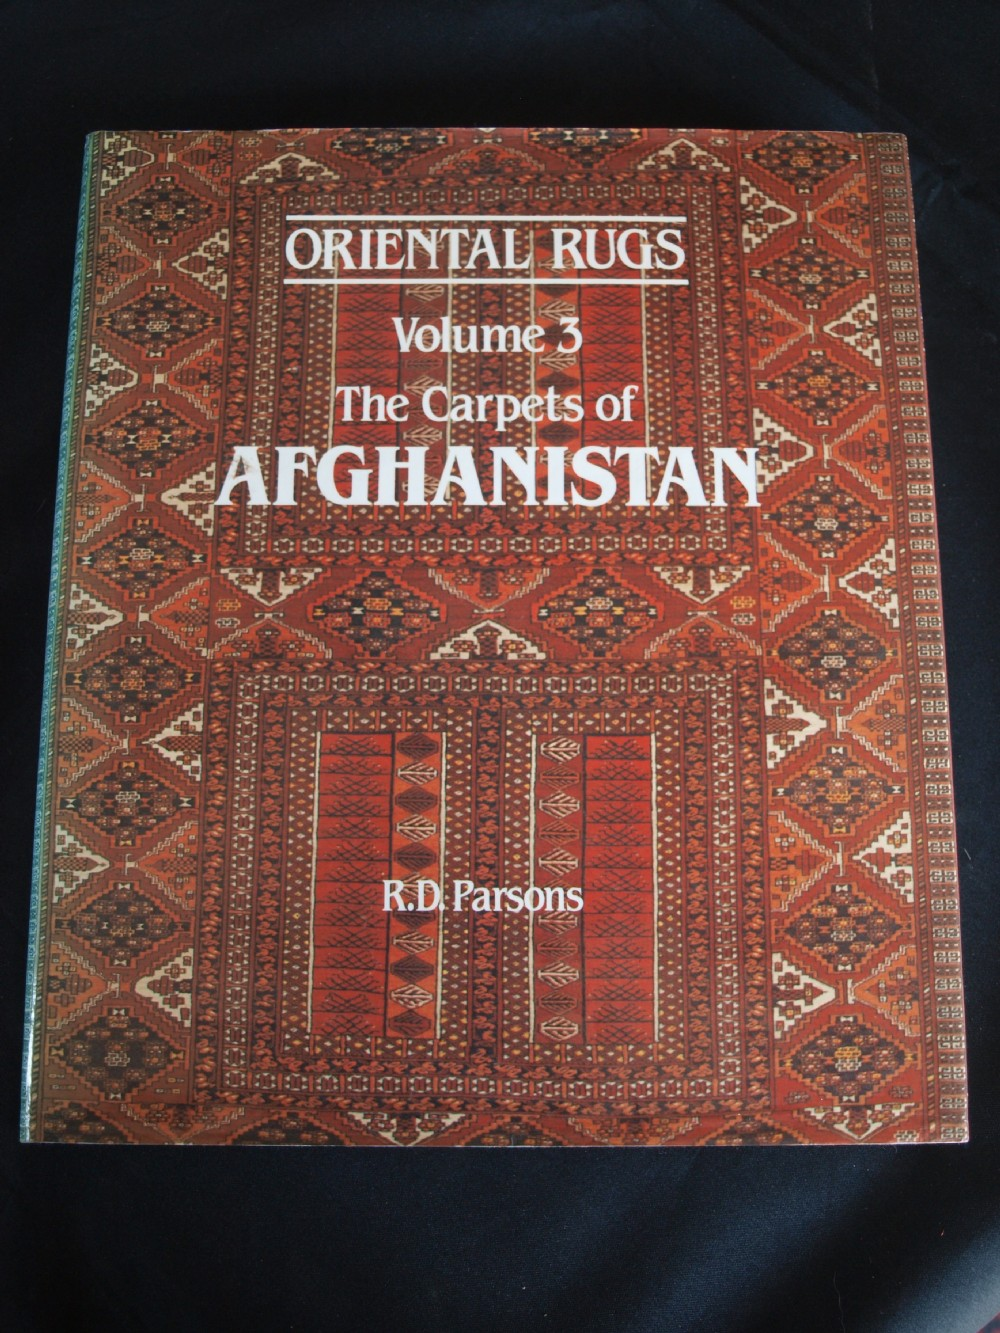 oriantal rugs volume 3 the carpets of afghanistan